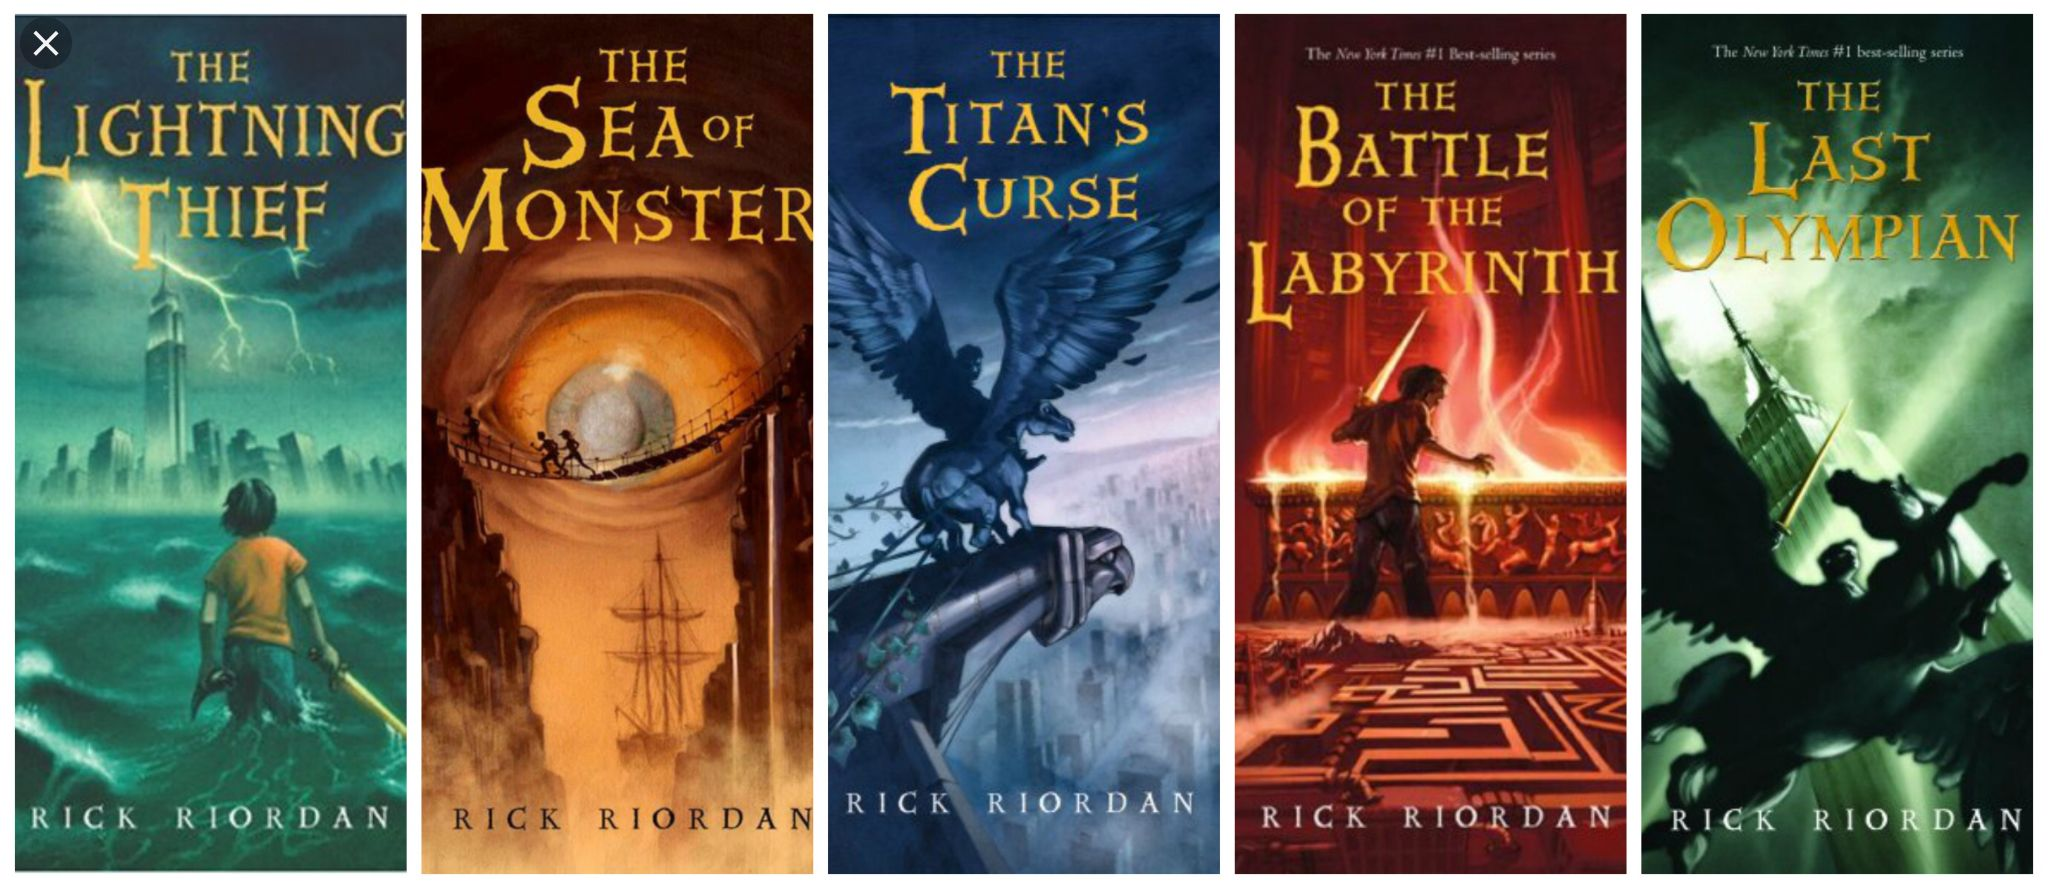 The Percy Jackson series was one of the first book series that I ...